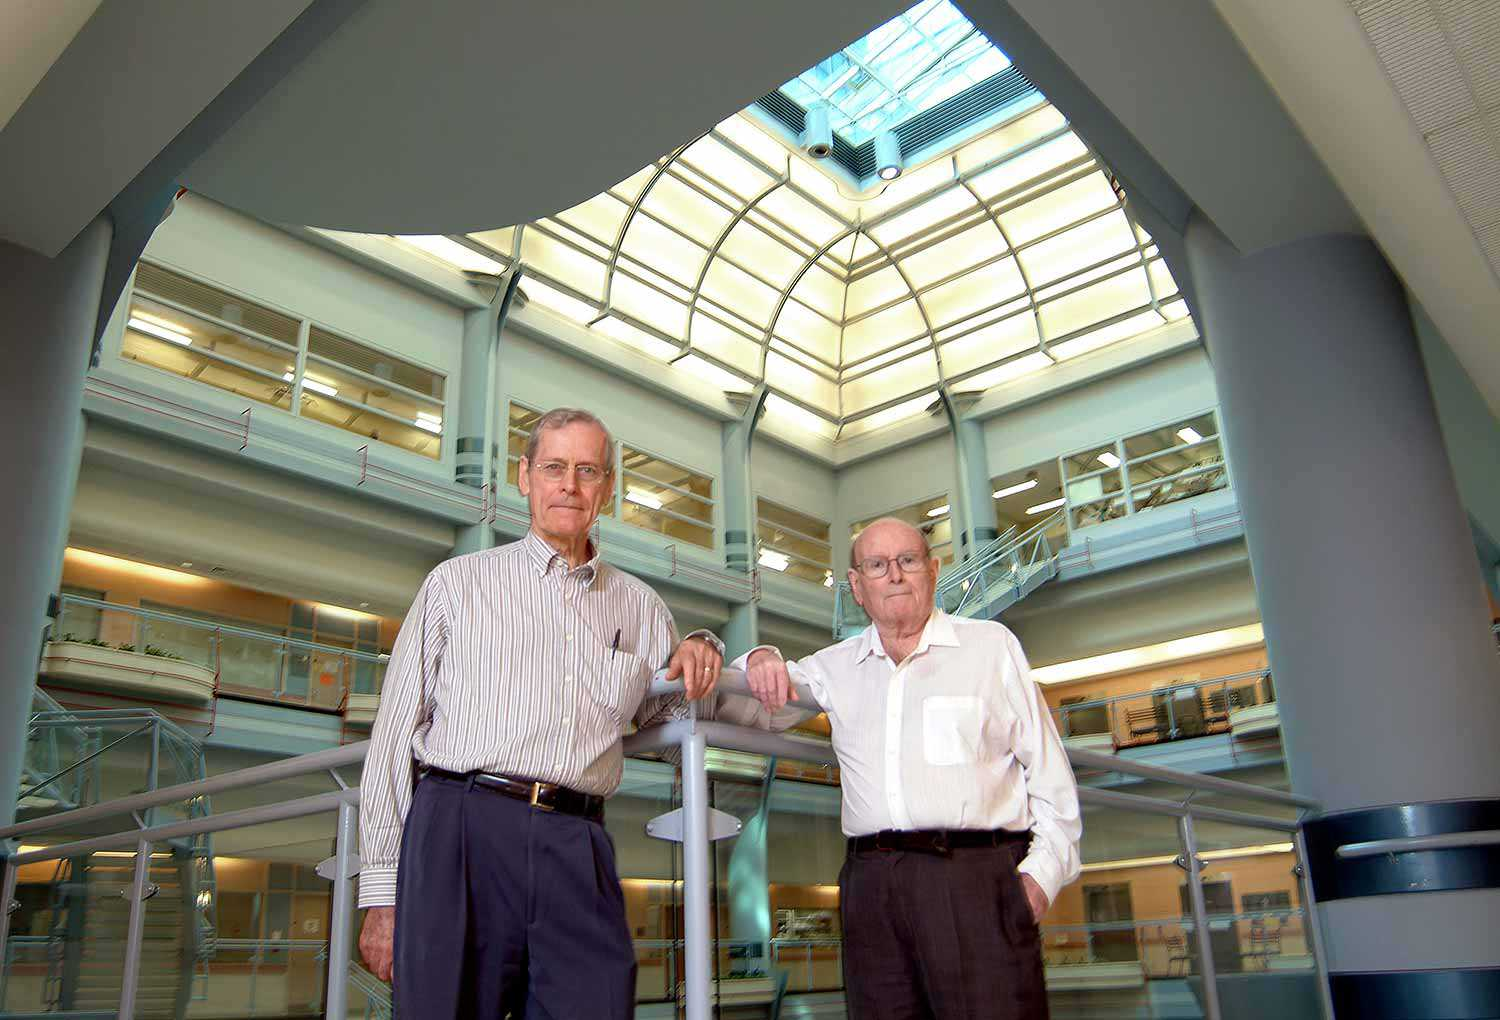 Drs. Jim Till and Ernest McCulloch (Photo: University of Toronto)